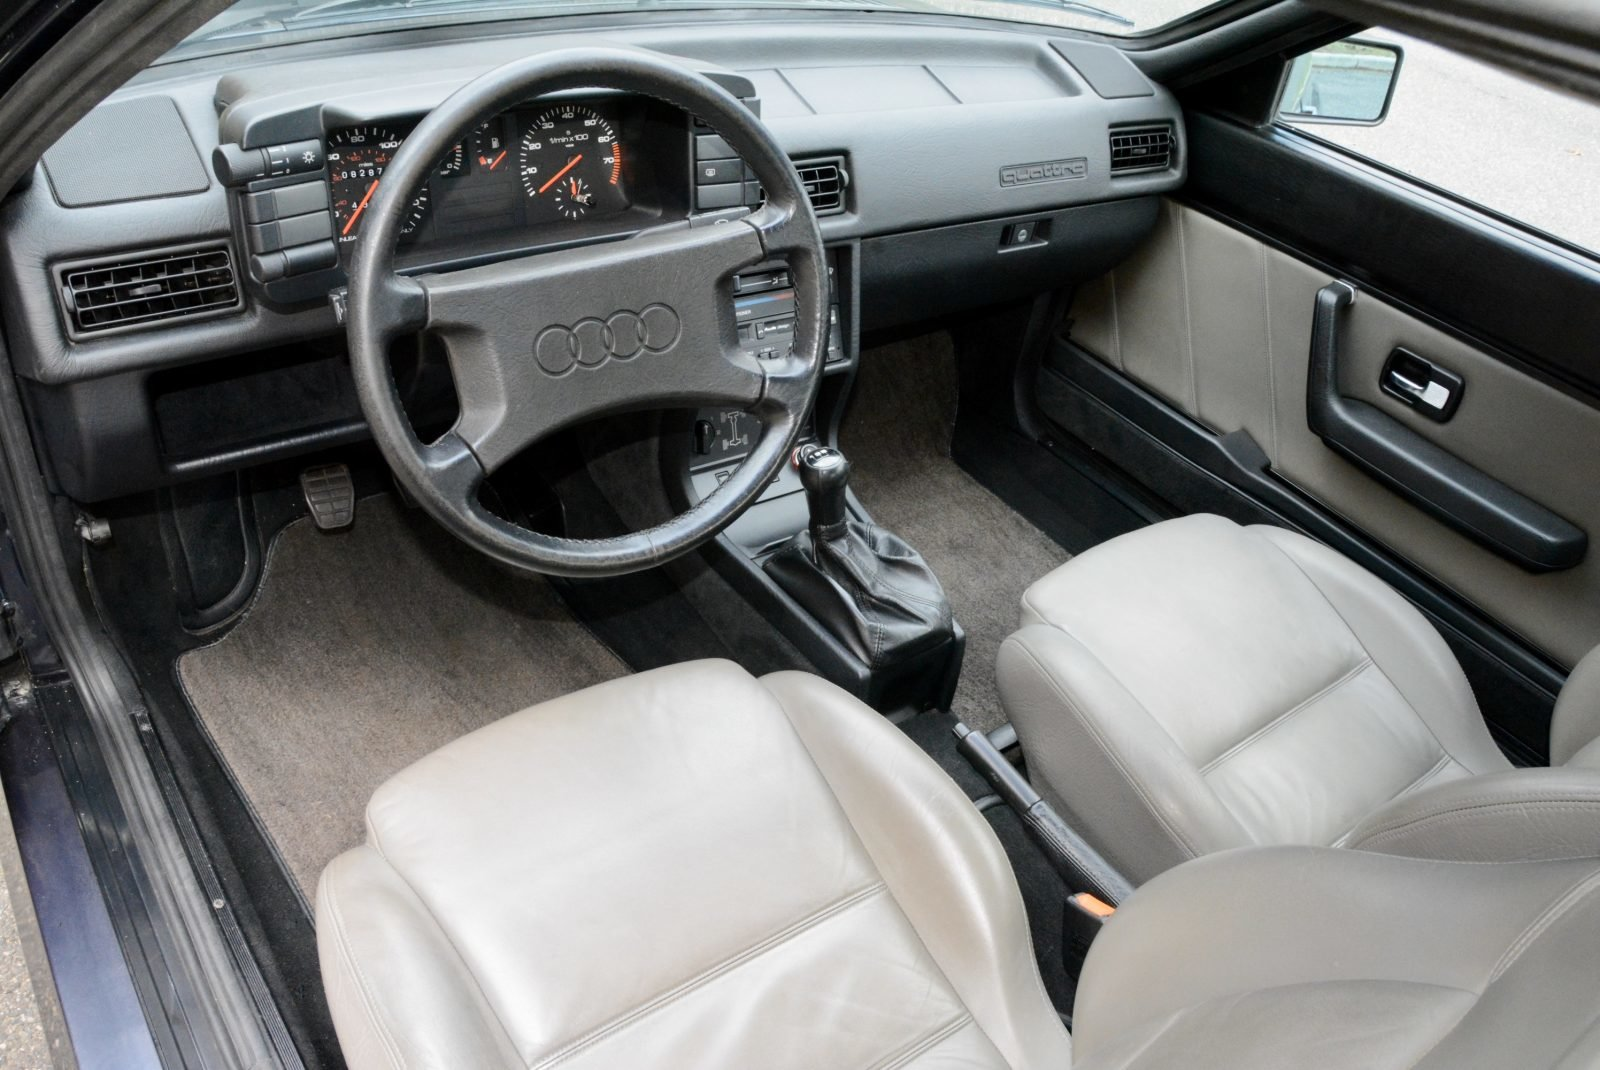 1985 Audi UR quattro Coupe Manual Rare 1 of 73 + Blue $55.9k For Sale (picture 5 of 6)